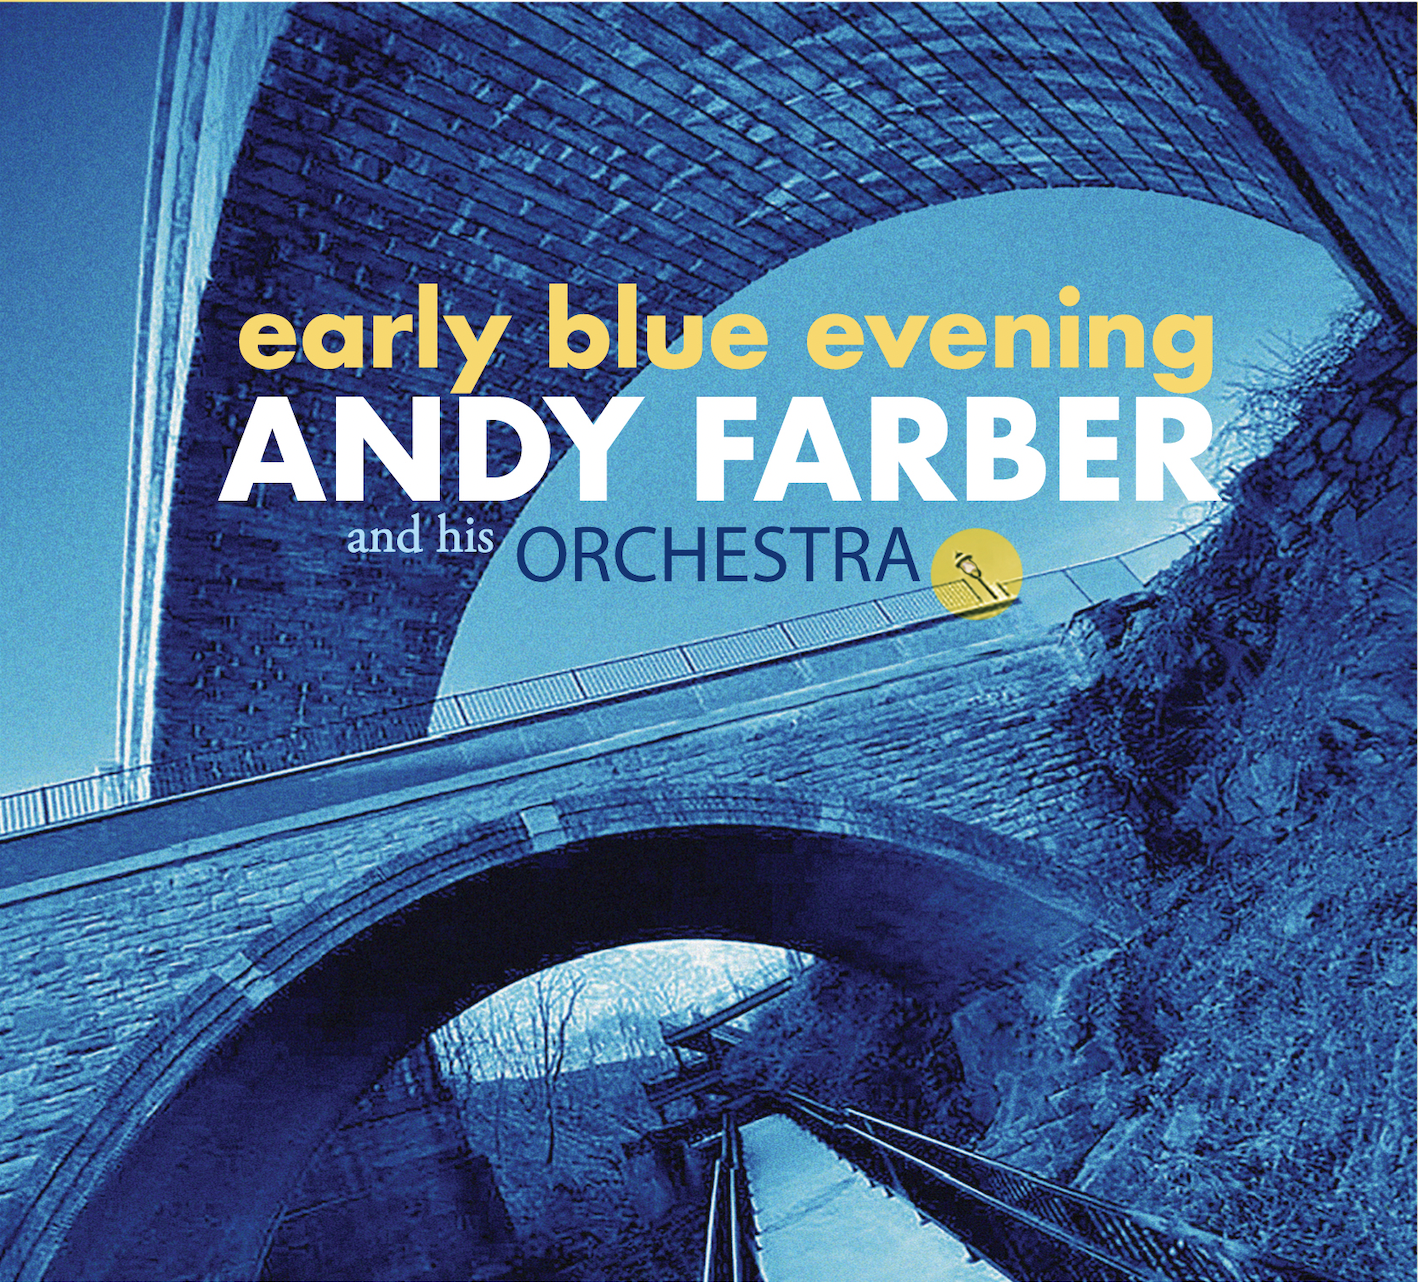 NEW RELEASE: Andy Farber & his Orchestra present EARLY BLUE EVENING, due out August 27, 2021 via ArtistShare